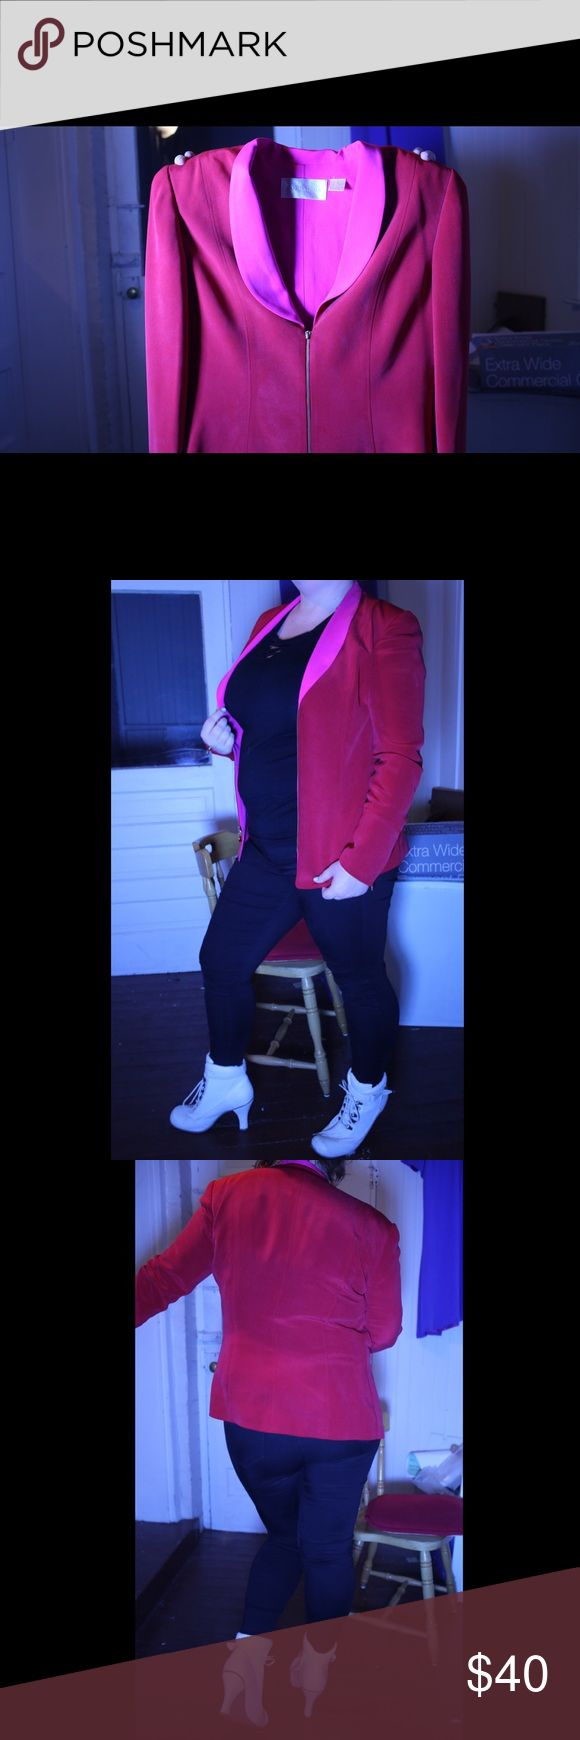 - Red Silk Blazer w/ Hot Pink Lapel - Brand: Dana Buchman  100% silk  Can be dressed up or down, perfect way to accentuate your gorgeousness Dana Buchman Jackets & Coats Blazers